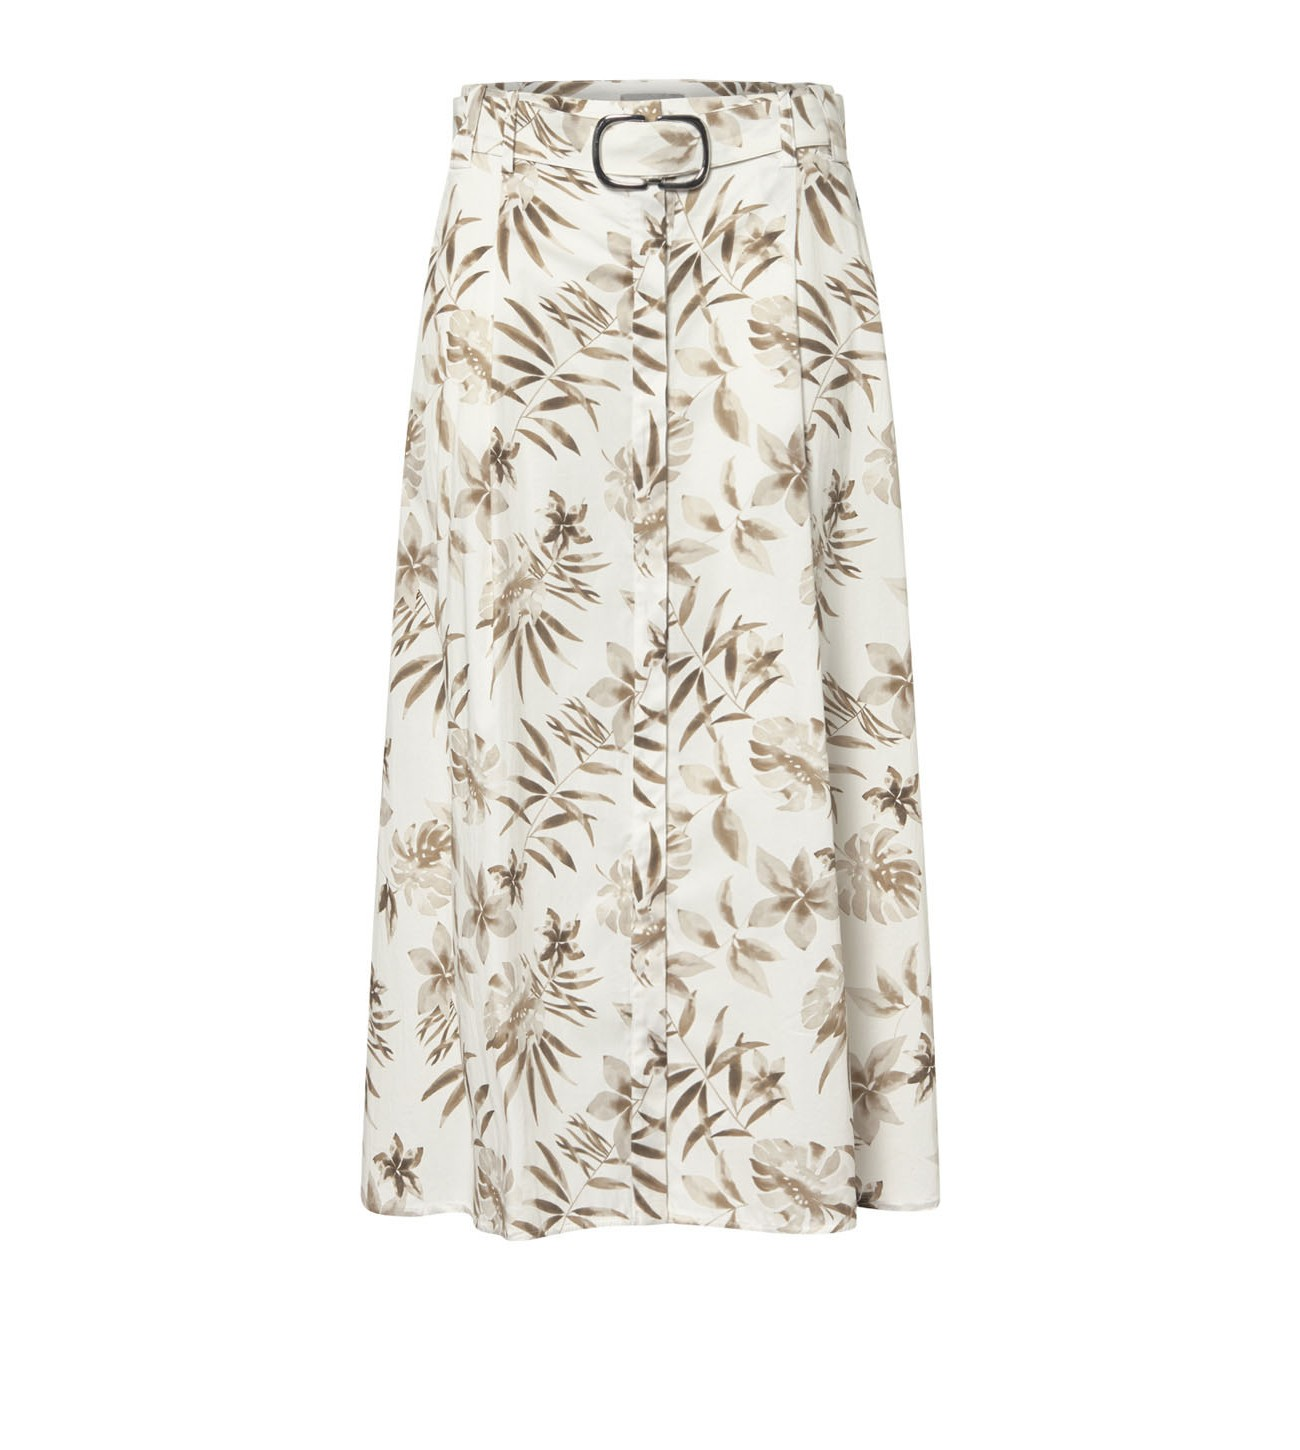 MARELLA_MIDI_SKIRT_IN_TROPICAL_PRINT_MARIONA_FASHION_CLOTHING_WOMAN_SHOP_ONLINE_ALASSIO